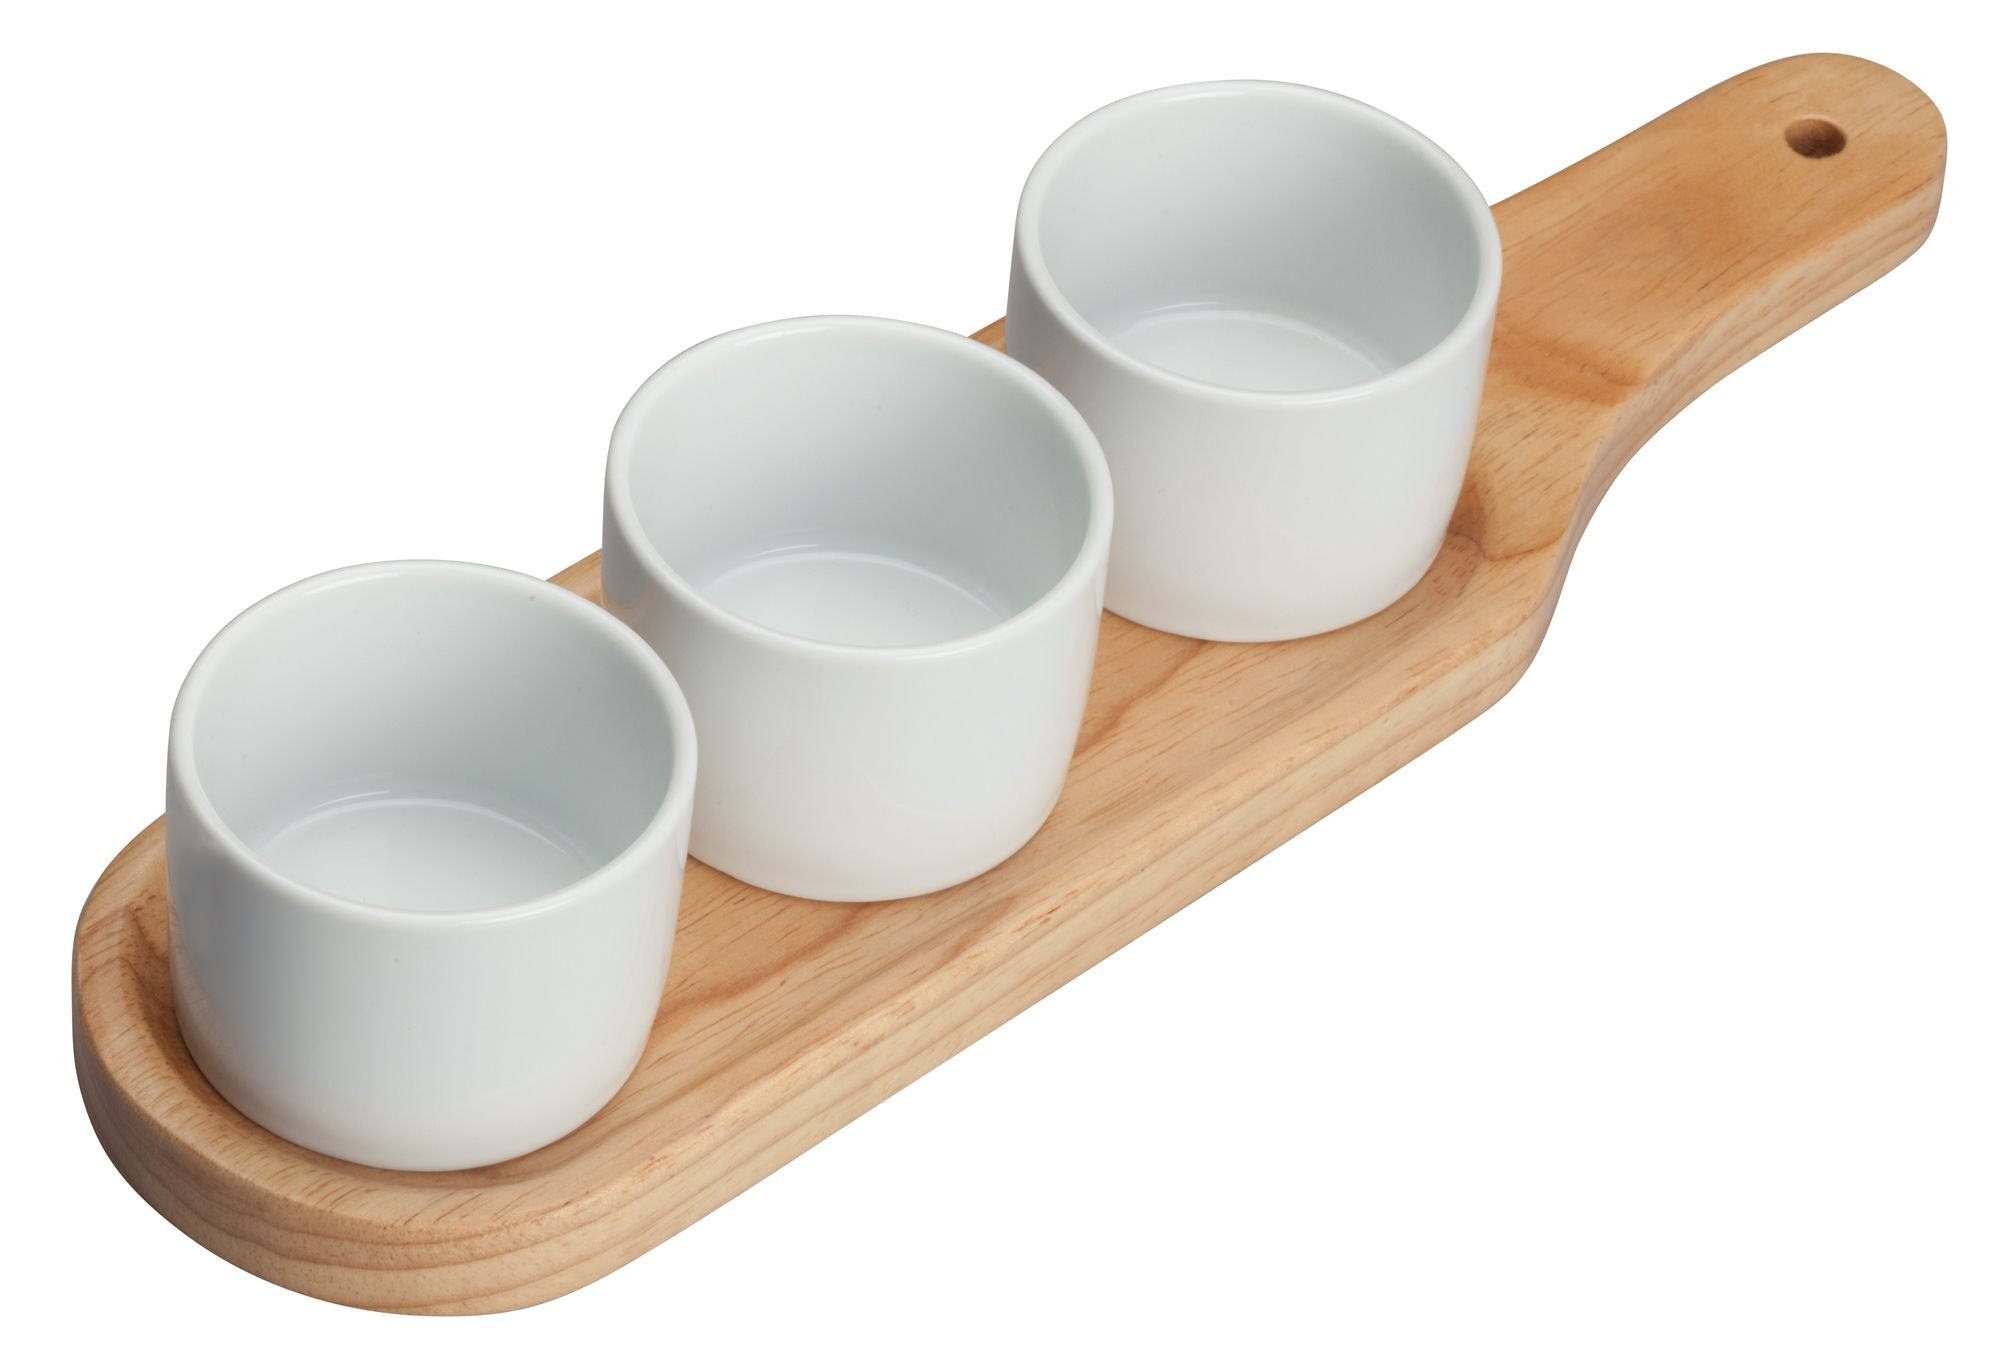 "Winco WDP015-103 Newry Porcelain Trio Bowl Set with Wooden Plate 11-5/8"" x 3-1/8"""